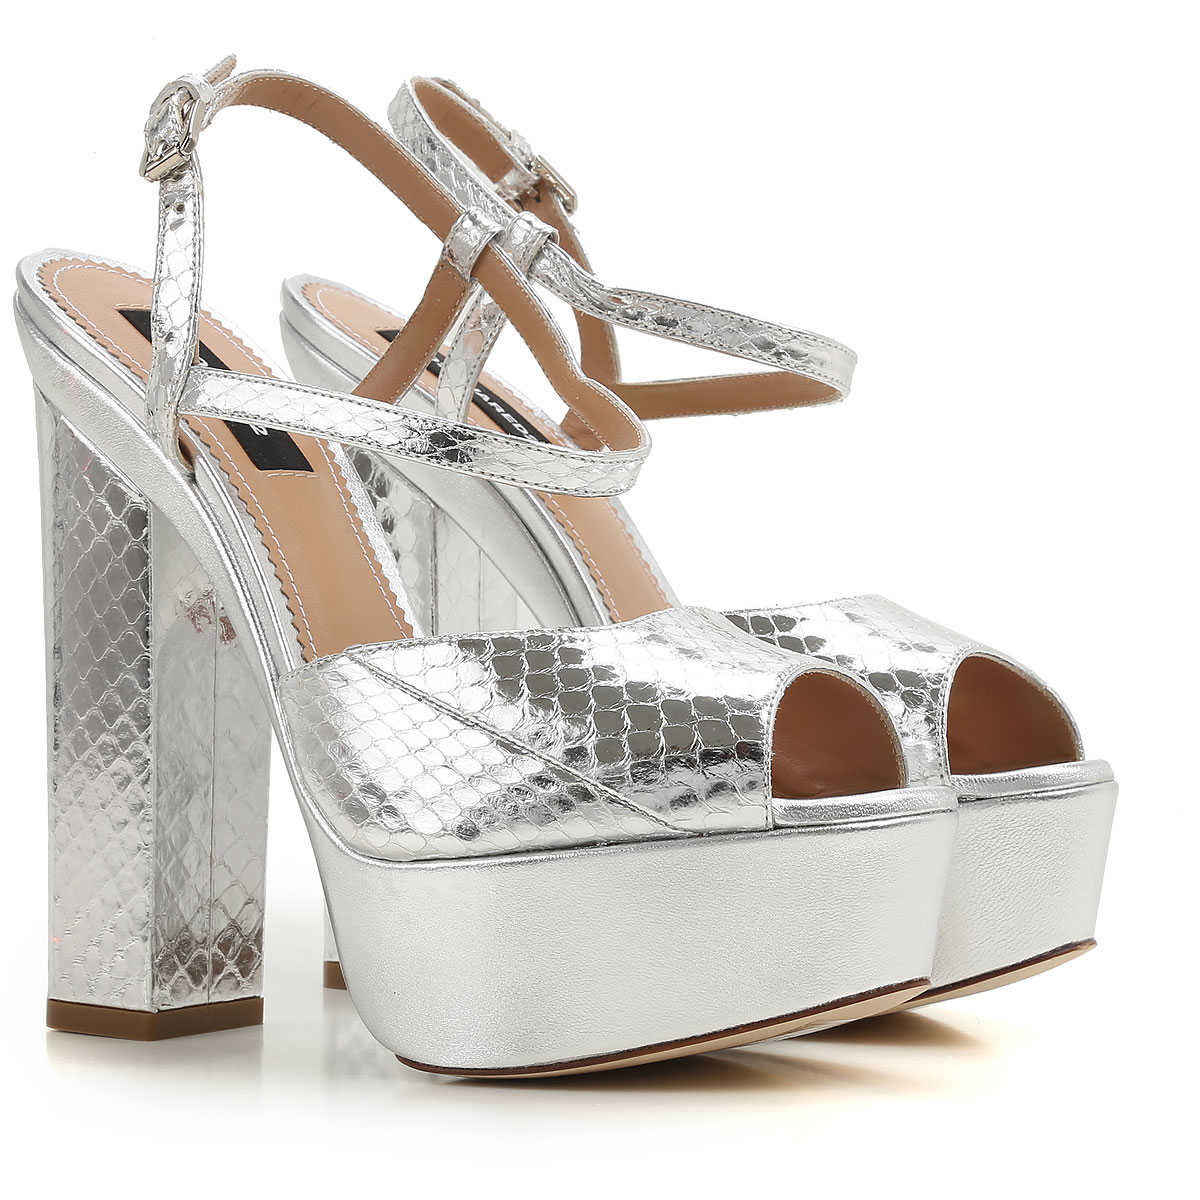 Dsquared2 Sandals for Women On Sale in Outlet Silver SE - GOOFASH